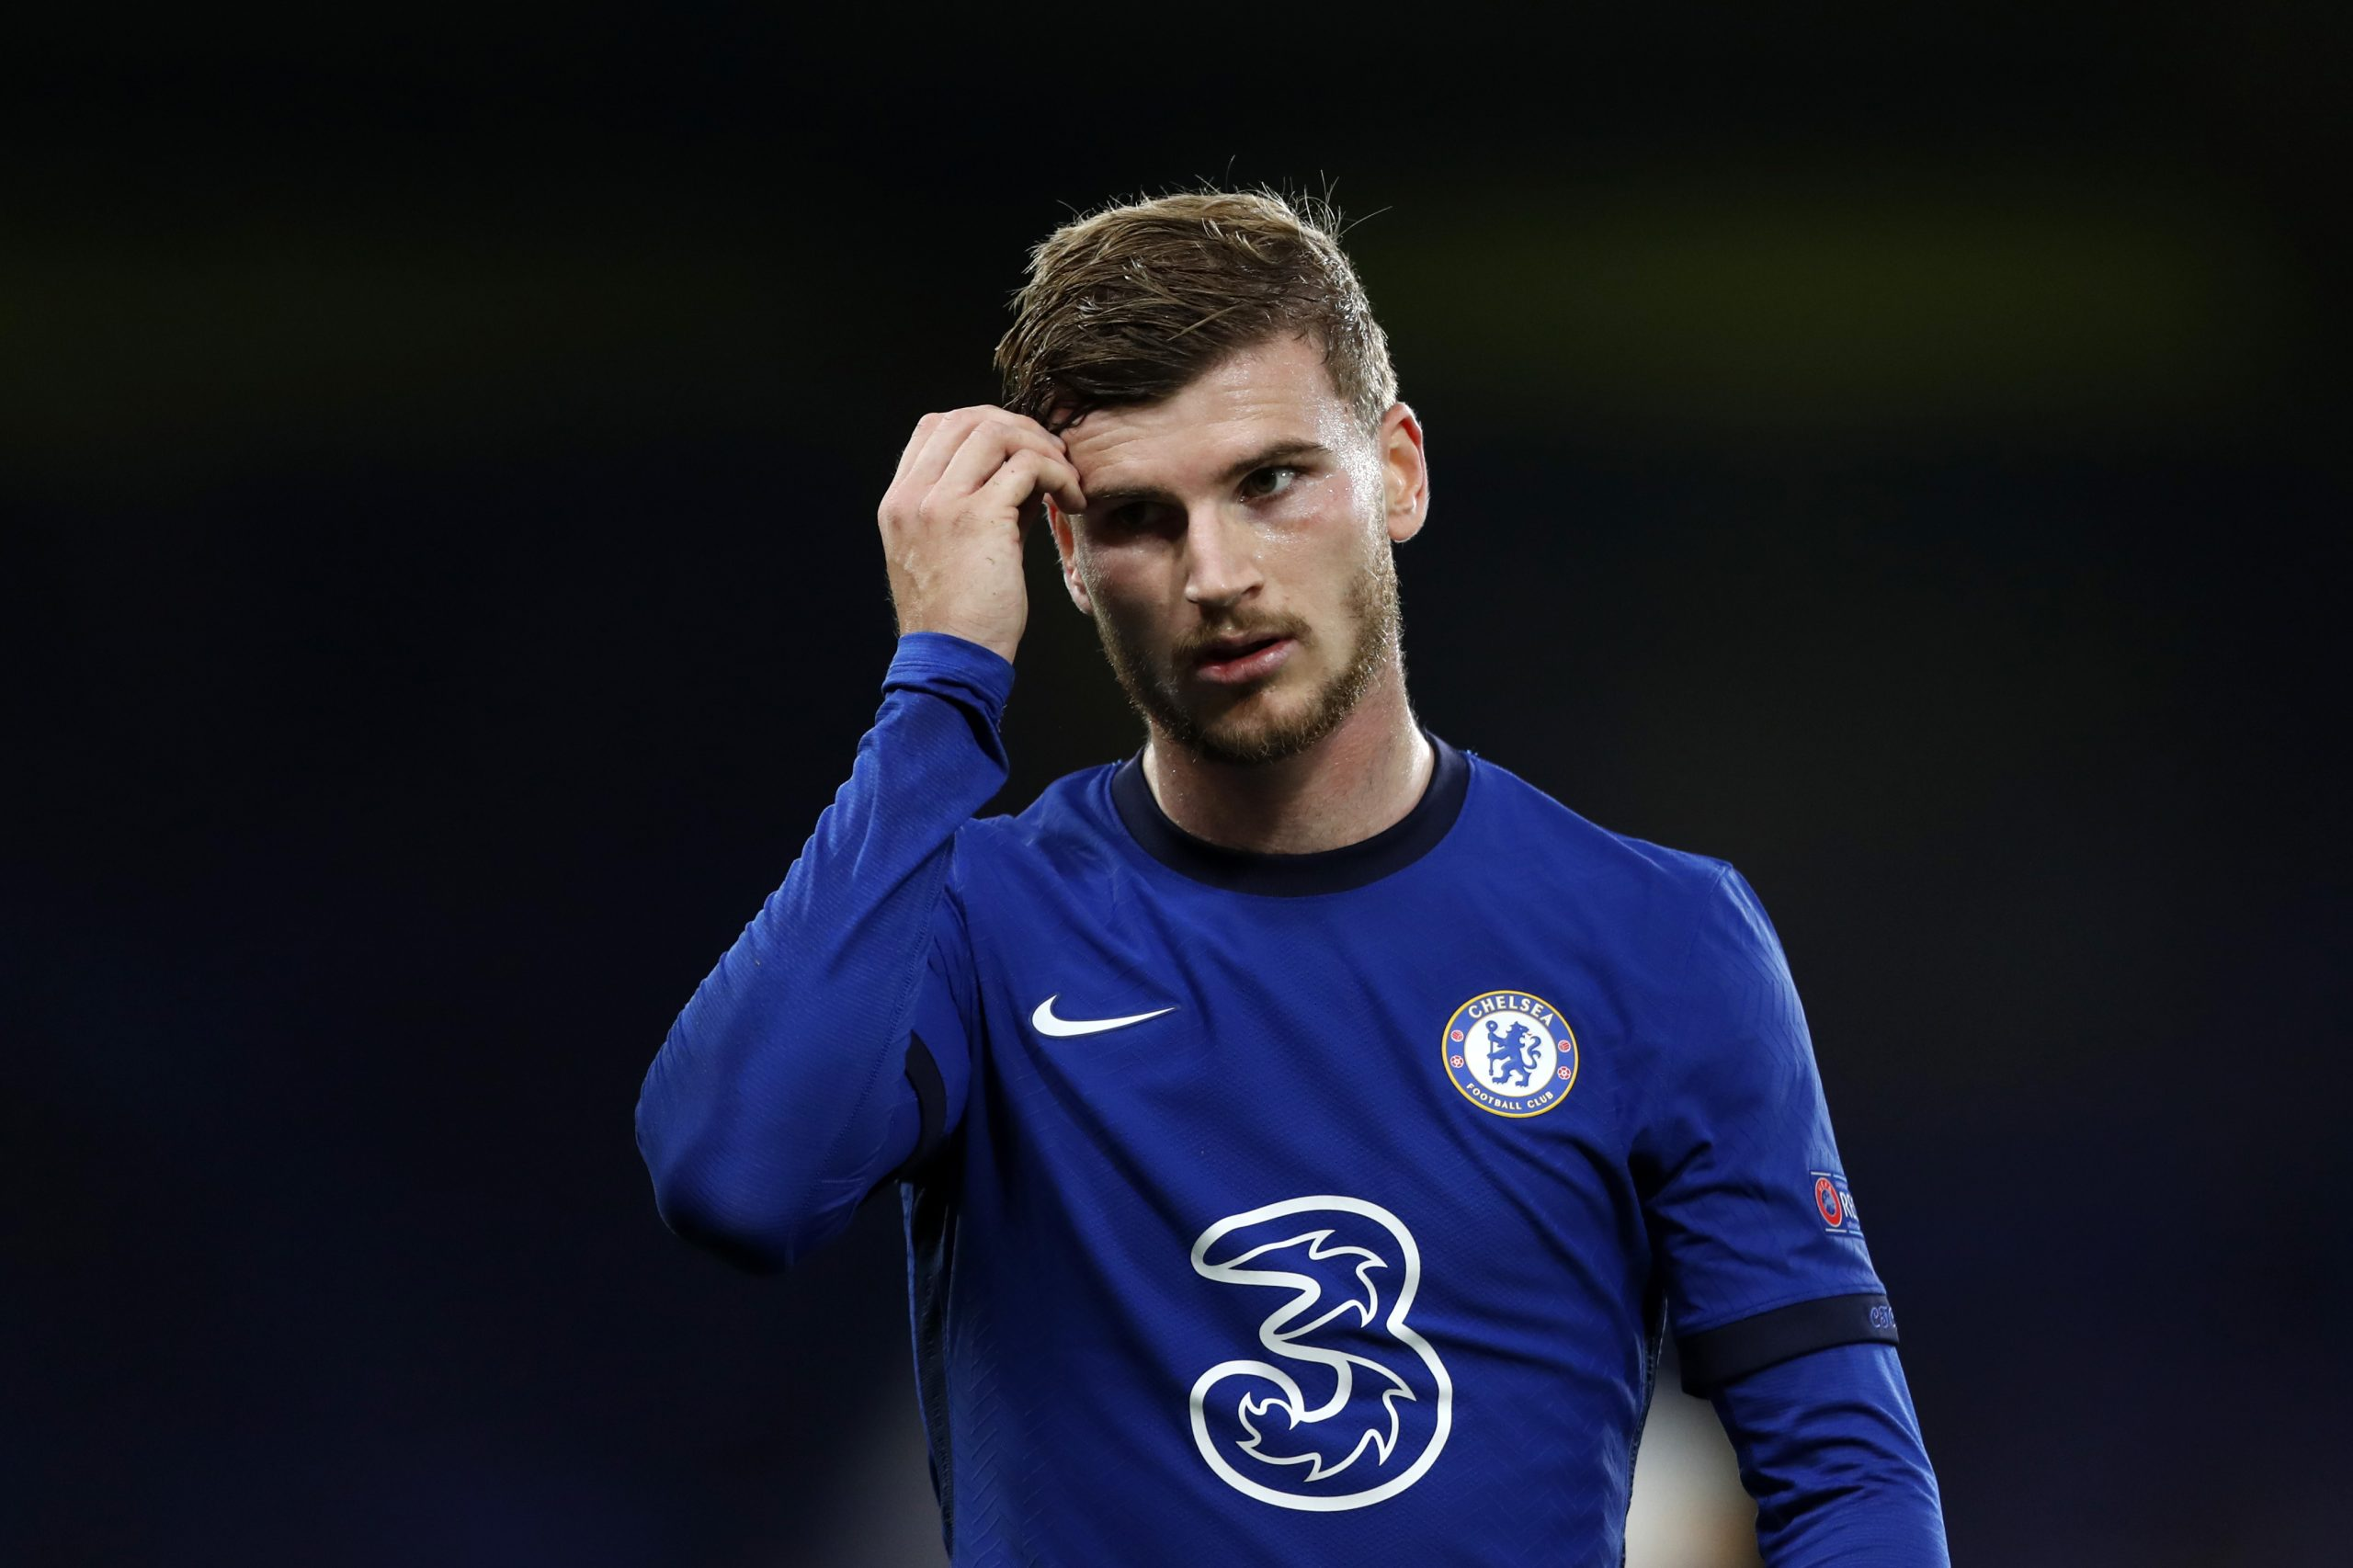 Chelsea striker Timo Werner is set to refuse a transfer swap to Borussia Dortmund in exchange for Erling Haaland. (GETTY Images)